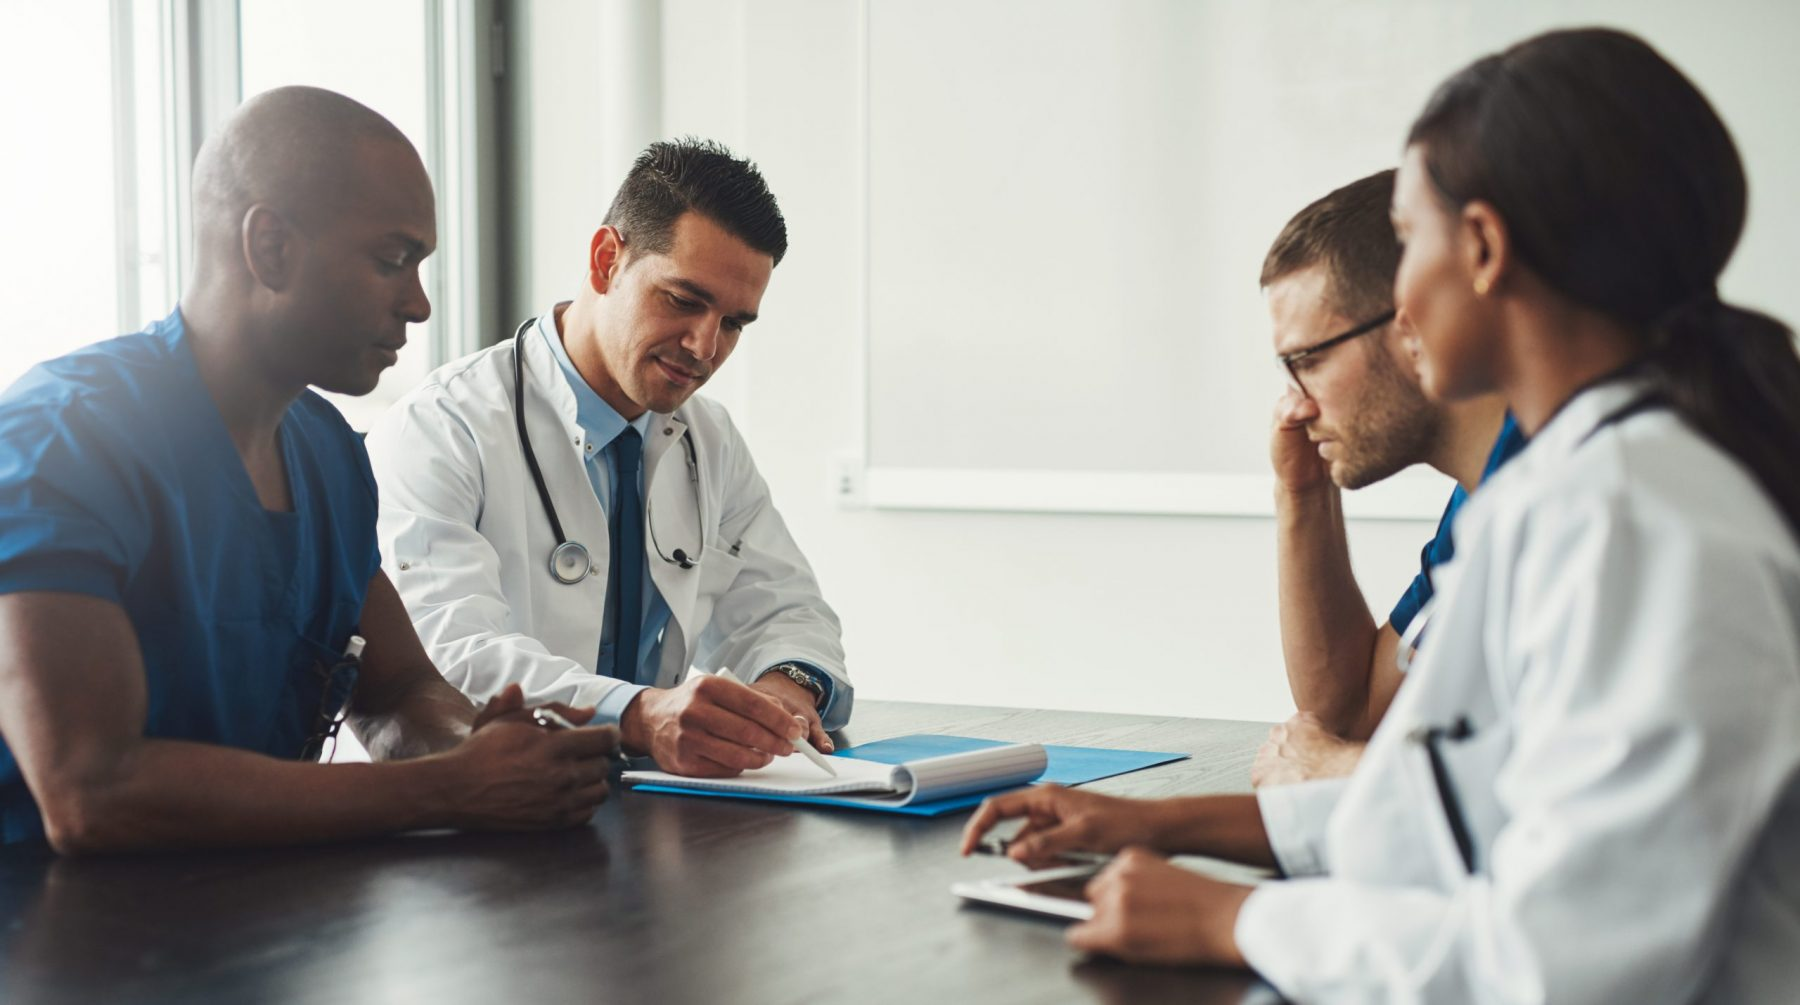 Young medical personal people on staff meeting sitting in front of each other at table in white coats and blue uniform shirts